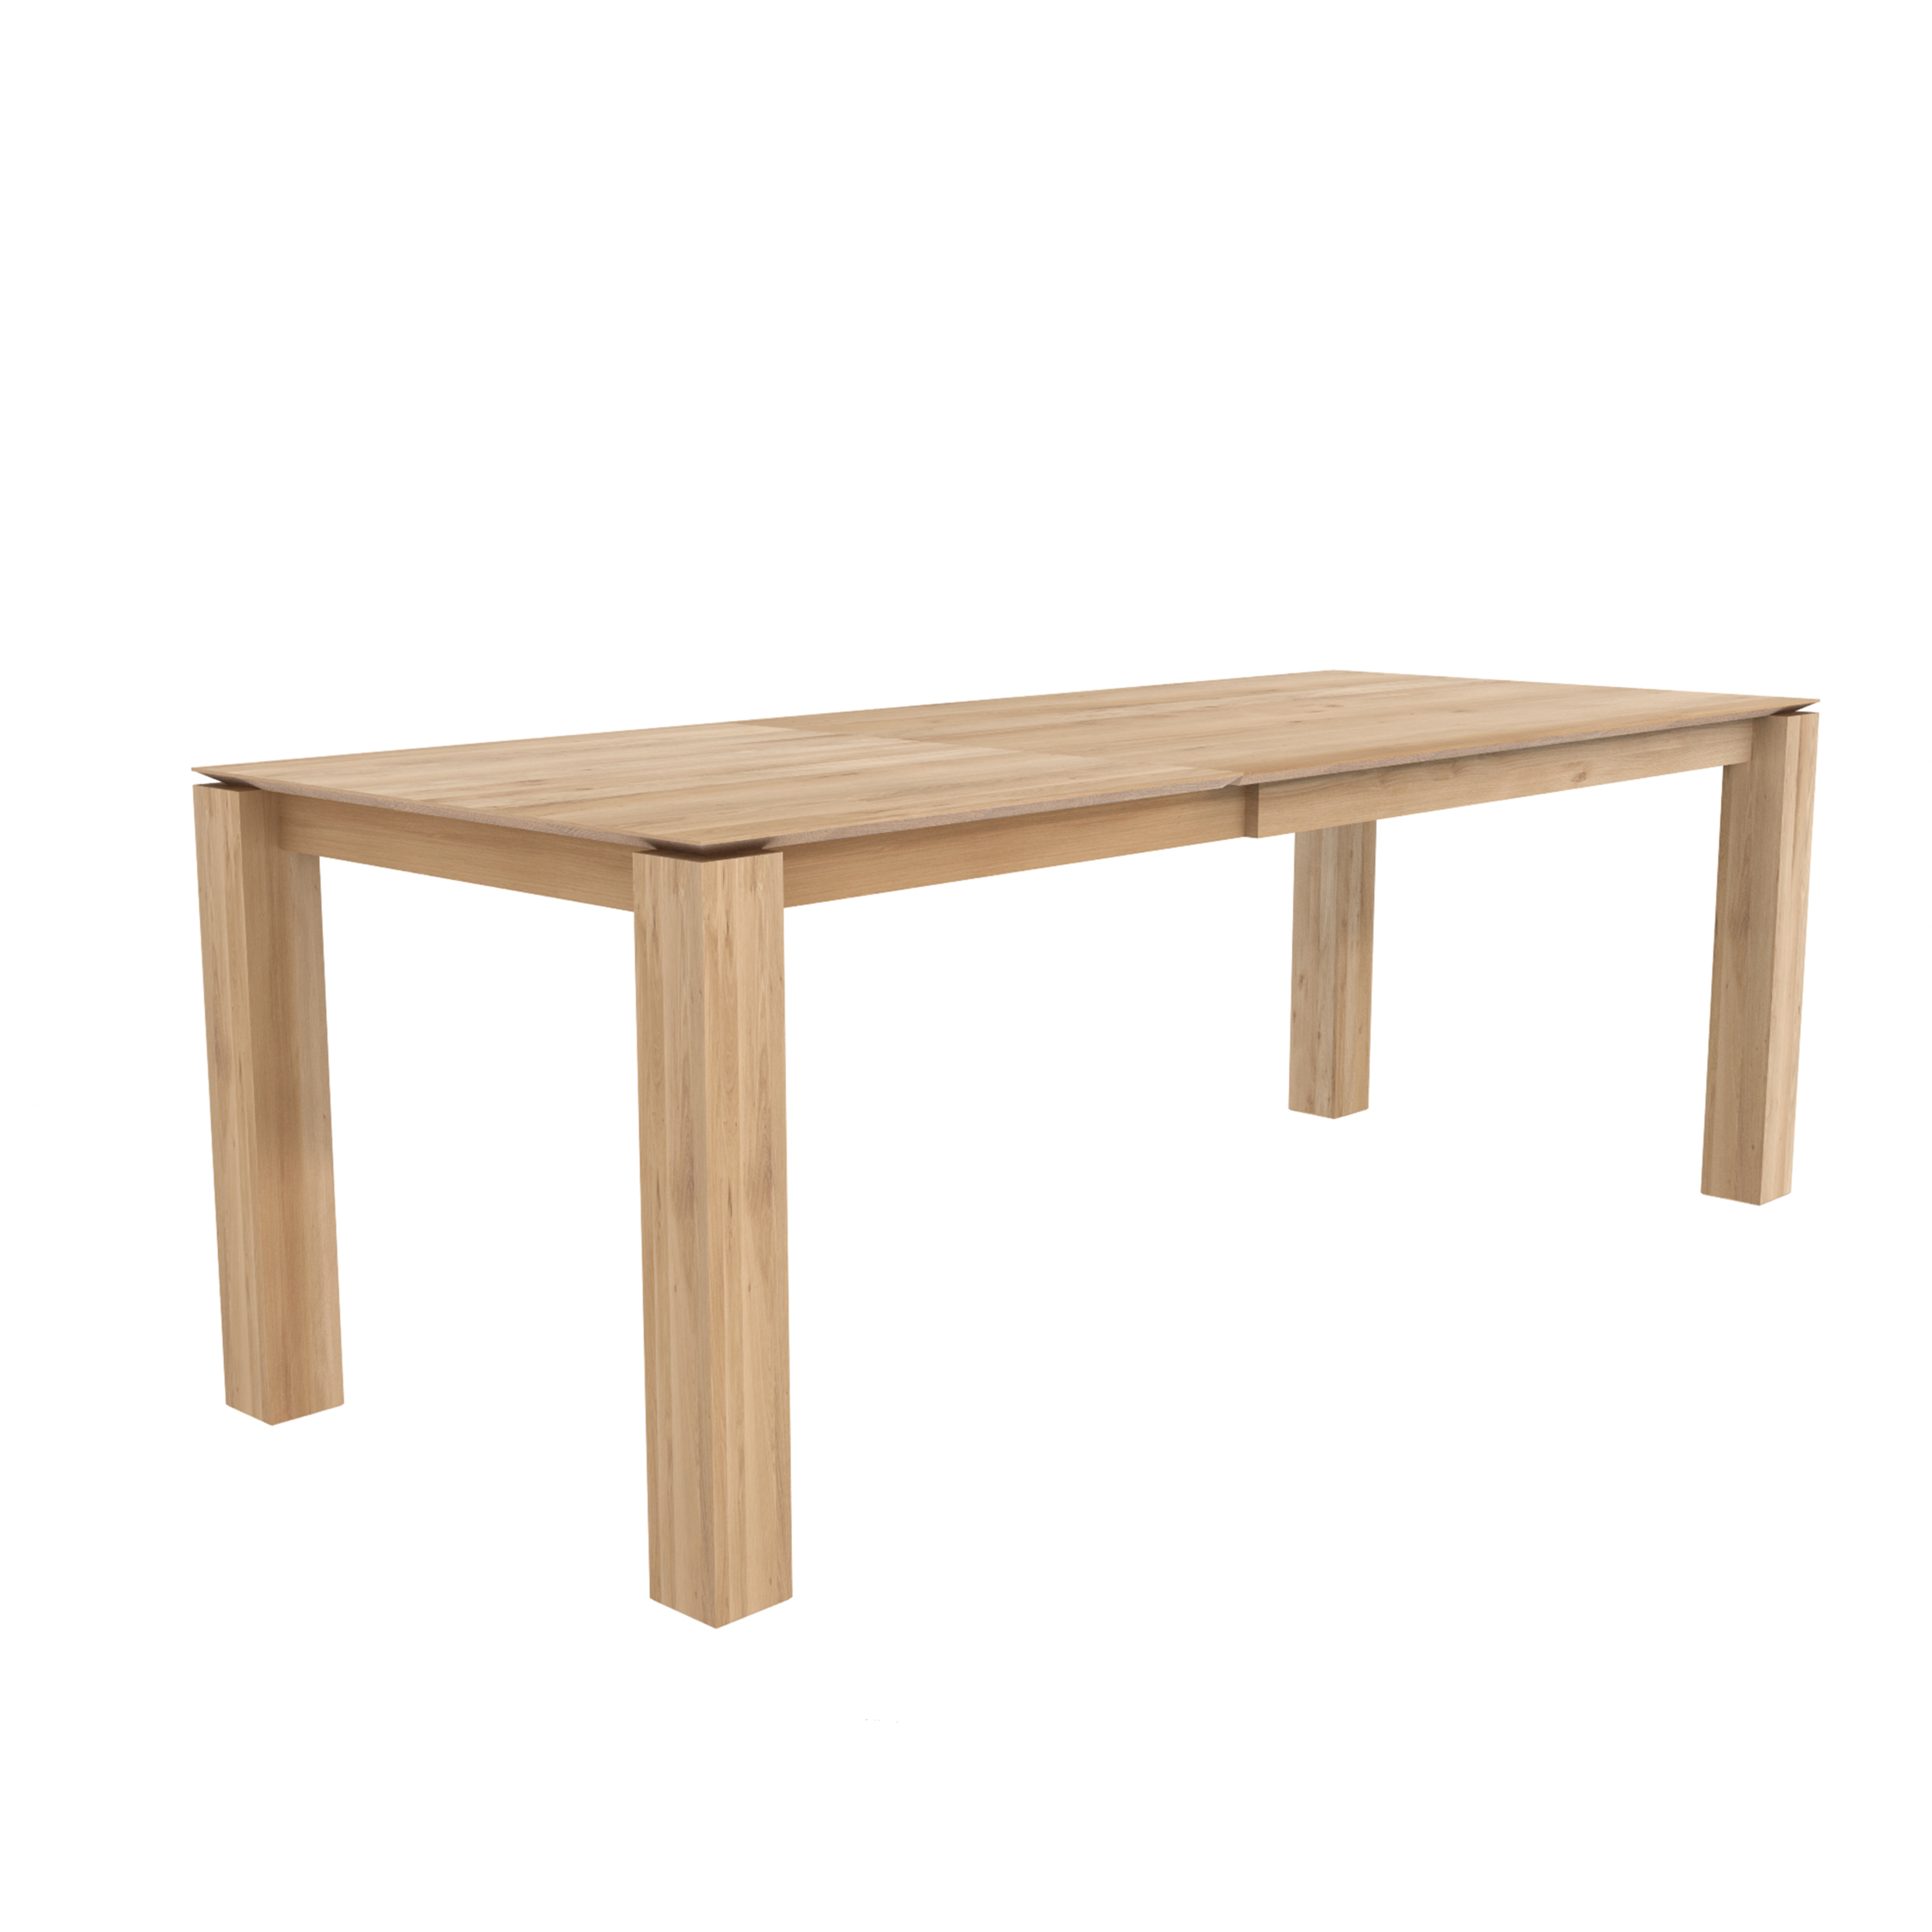 51942 Slice extendable dining table - Oak (2).jpg.png